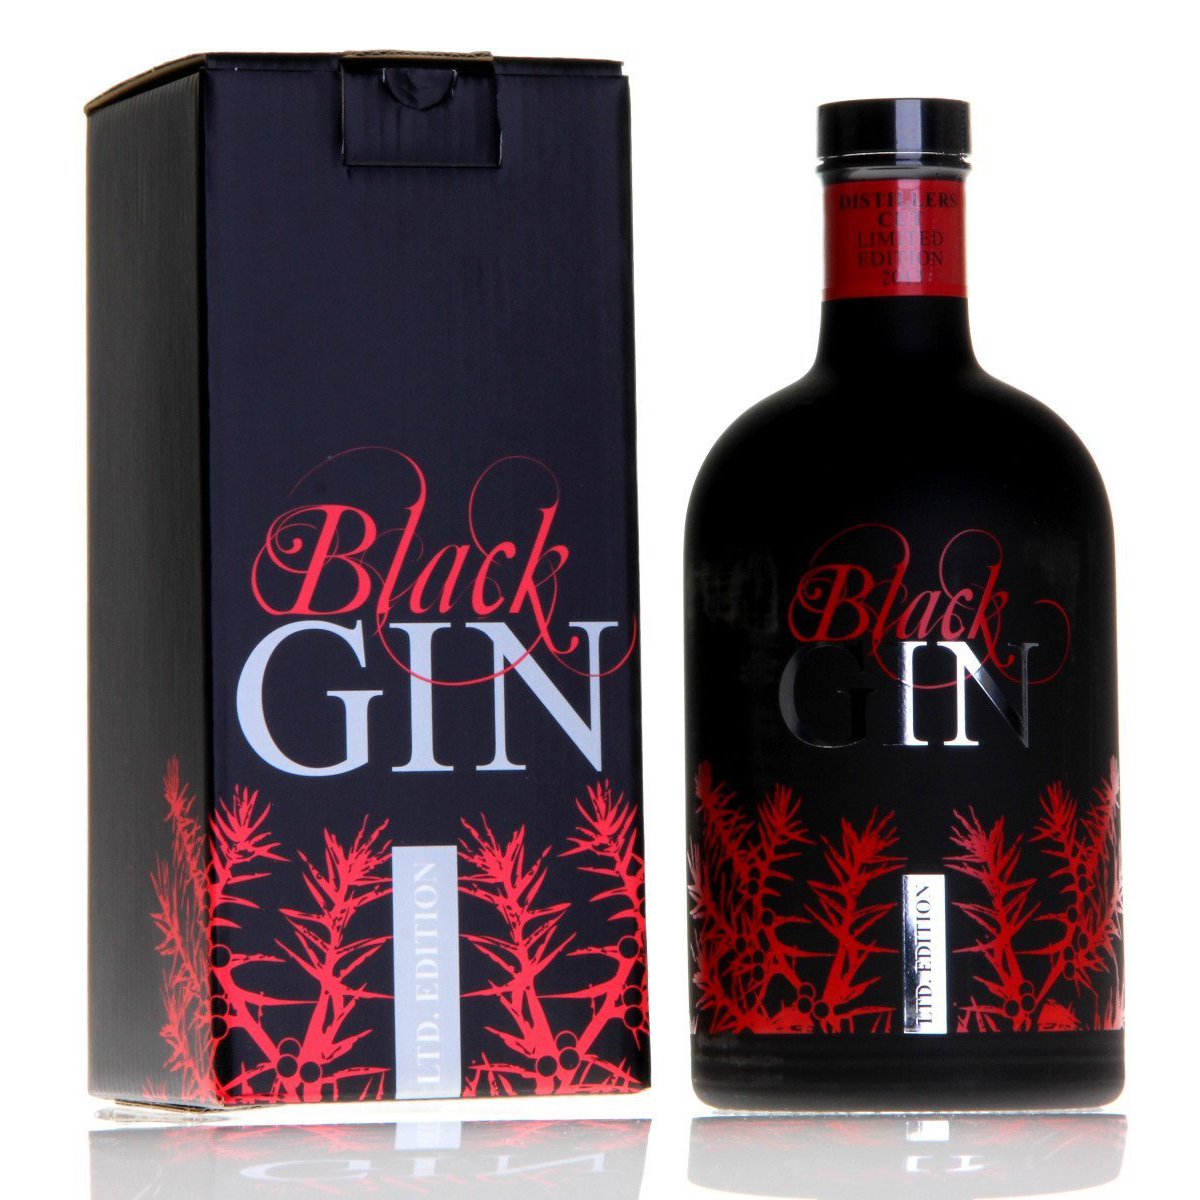 Black Gin Distiller'S Cut Limited Edition 2012 (1 x 0.7 l)